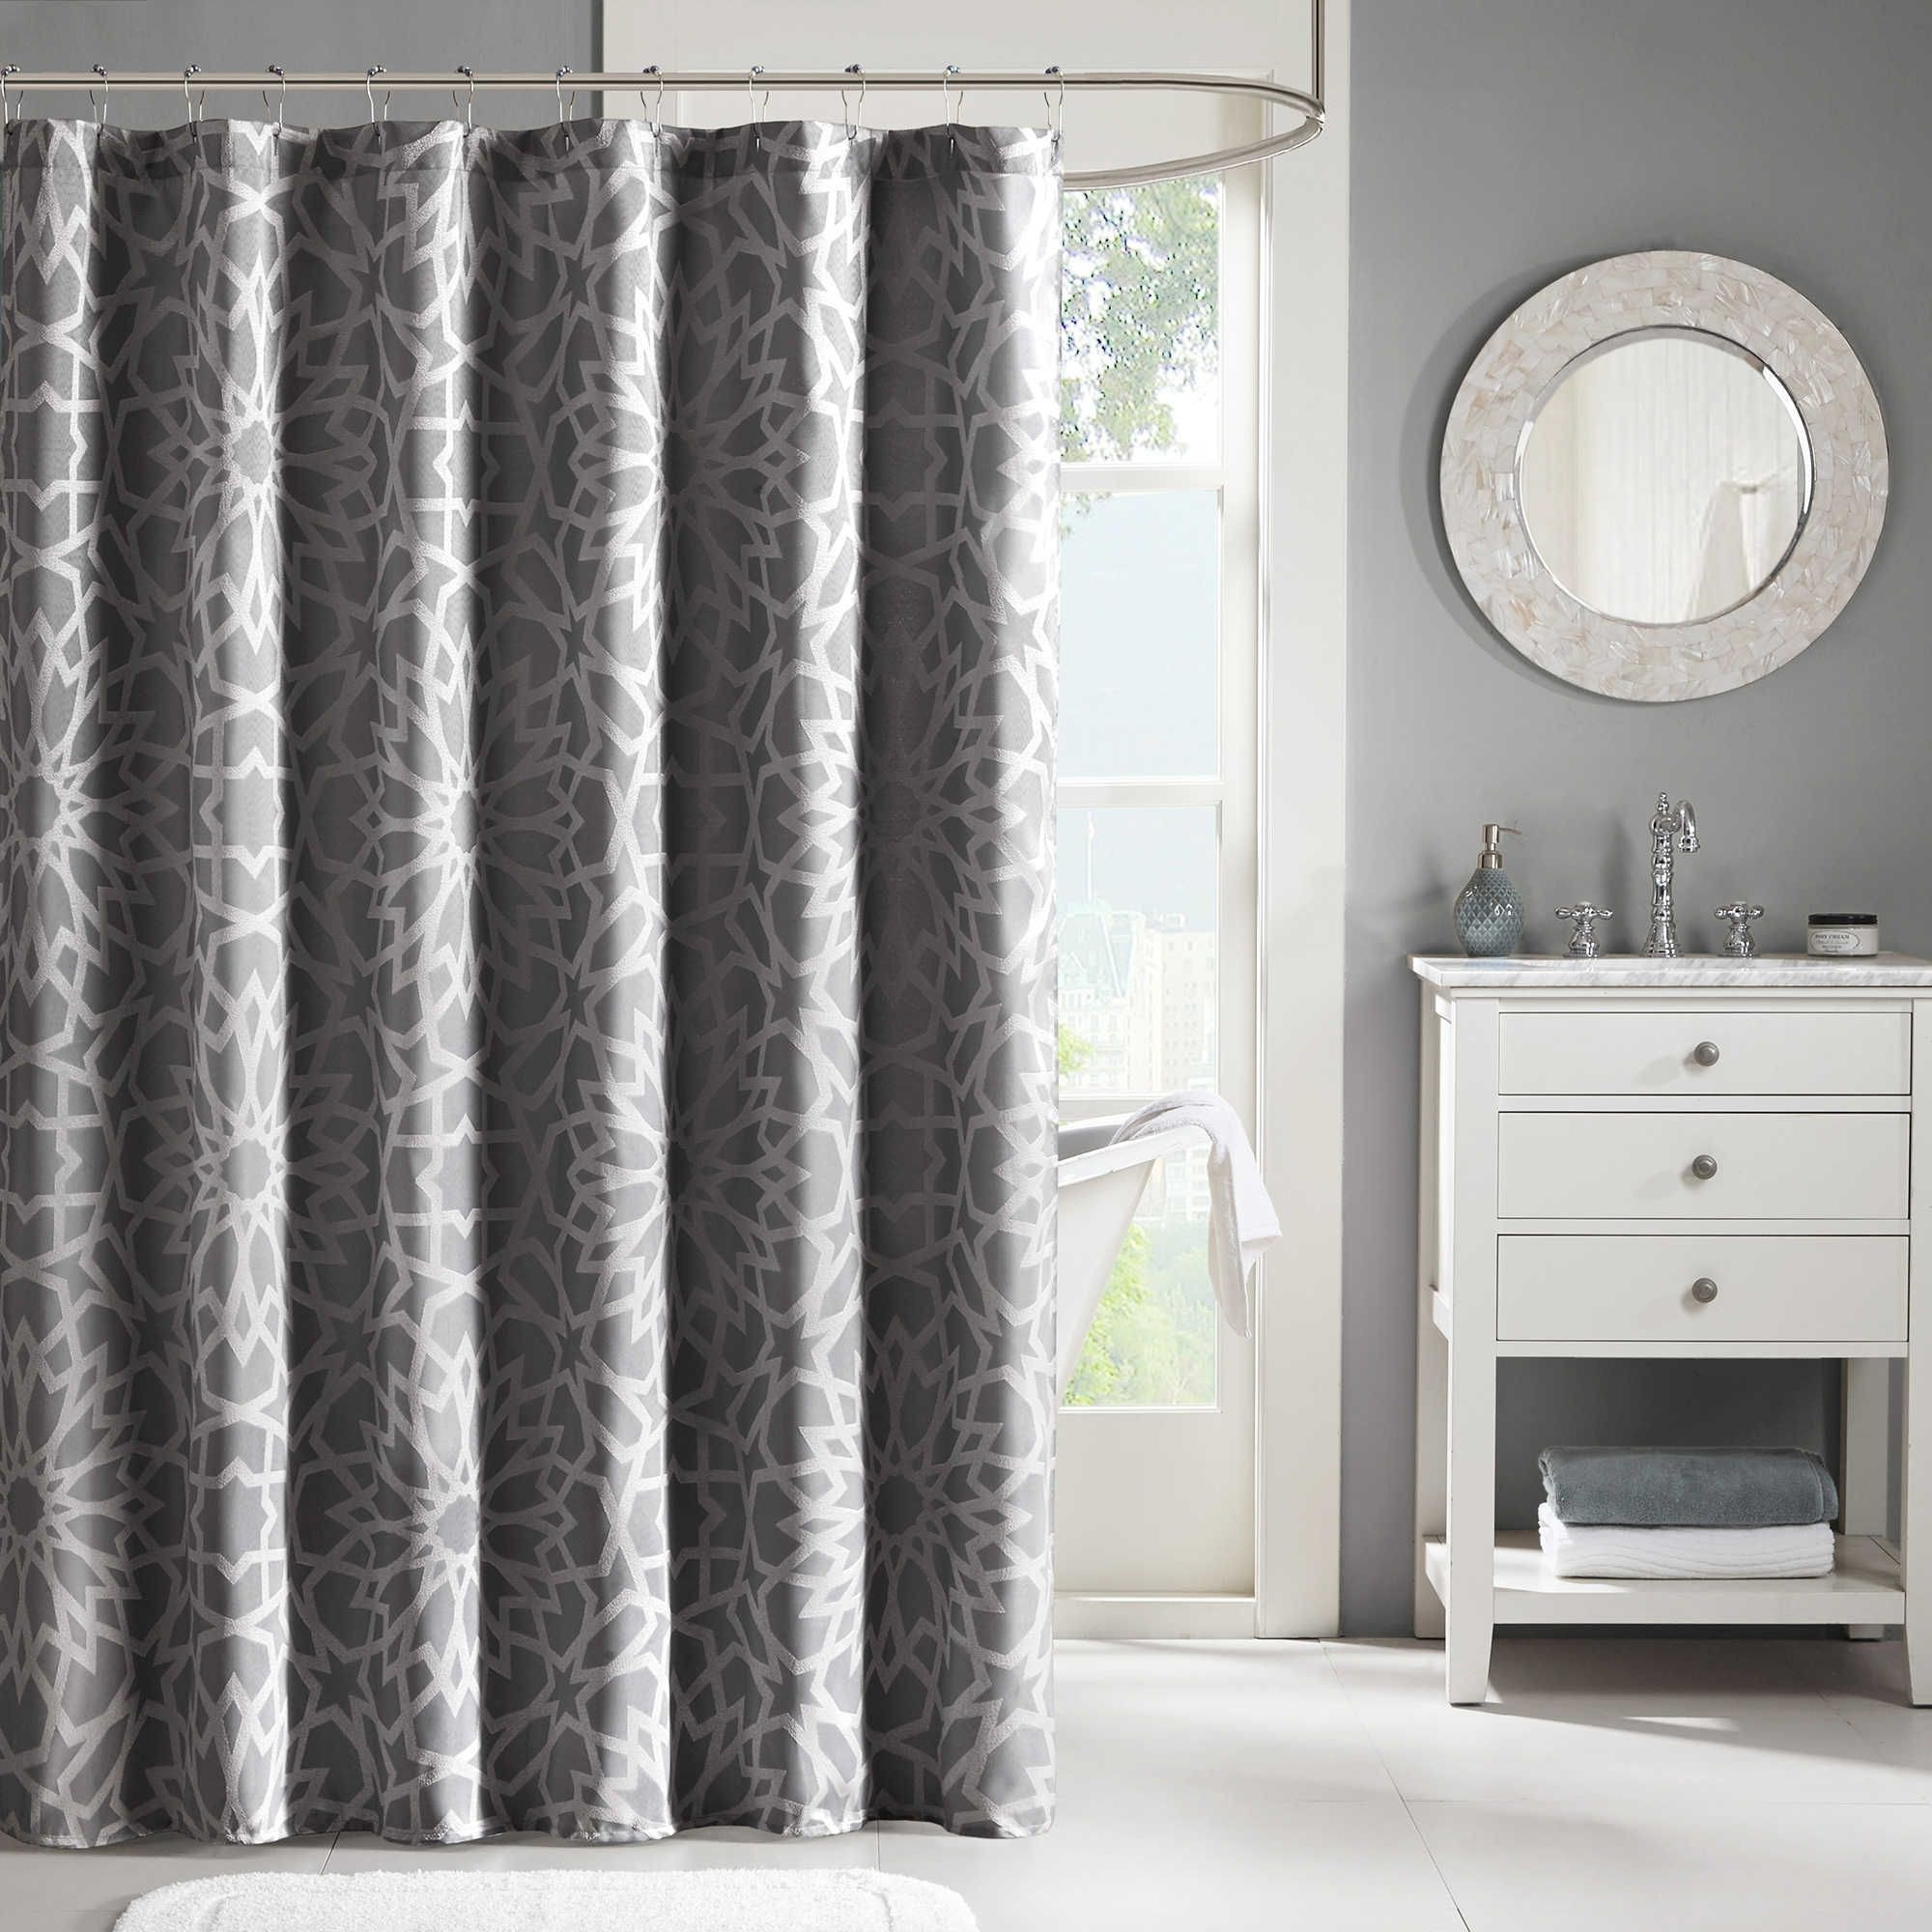 Best Of 76 Inch Long Shower Curtain